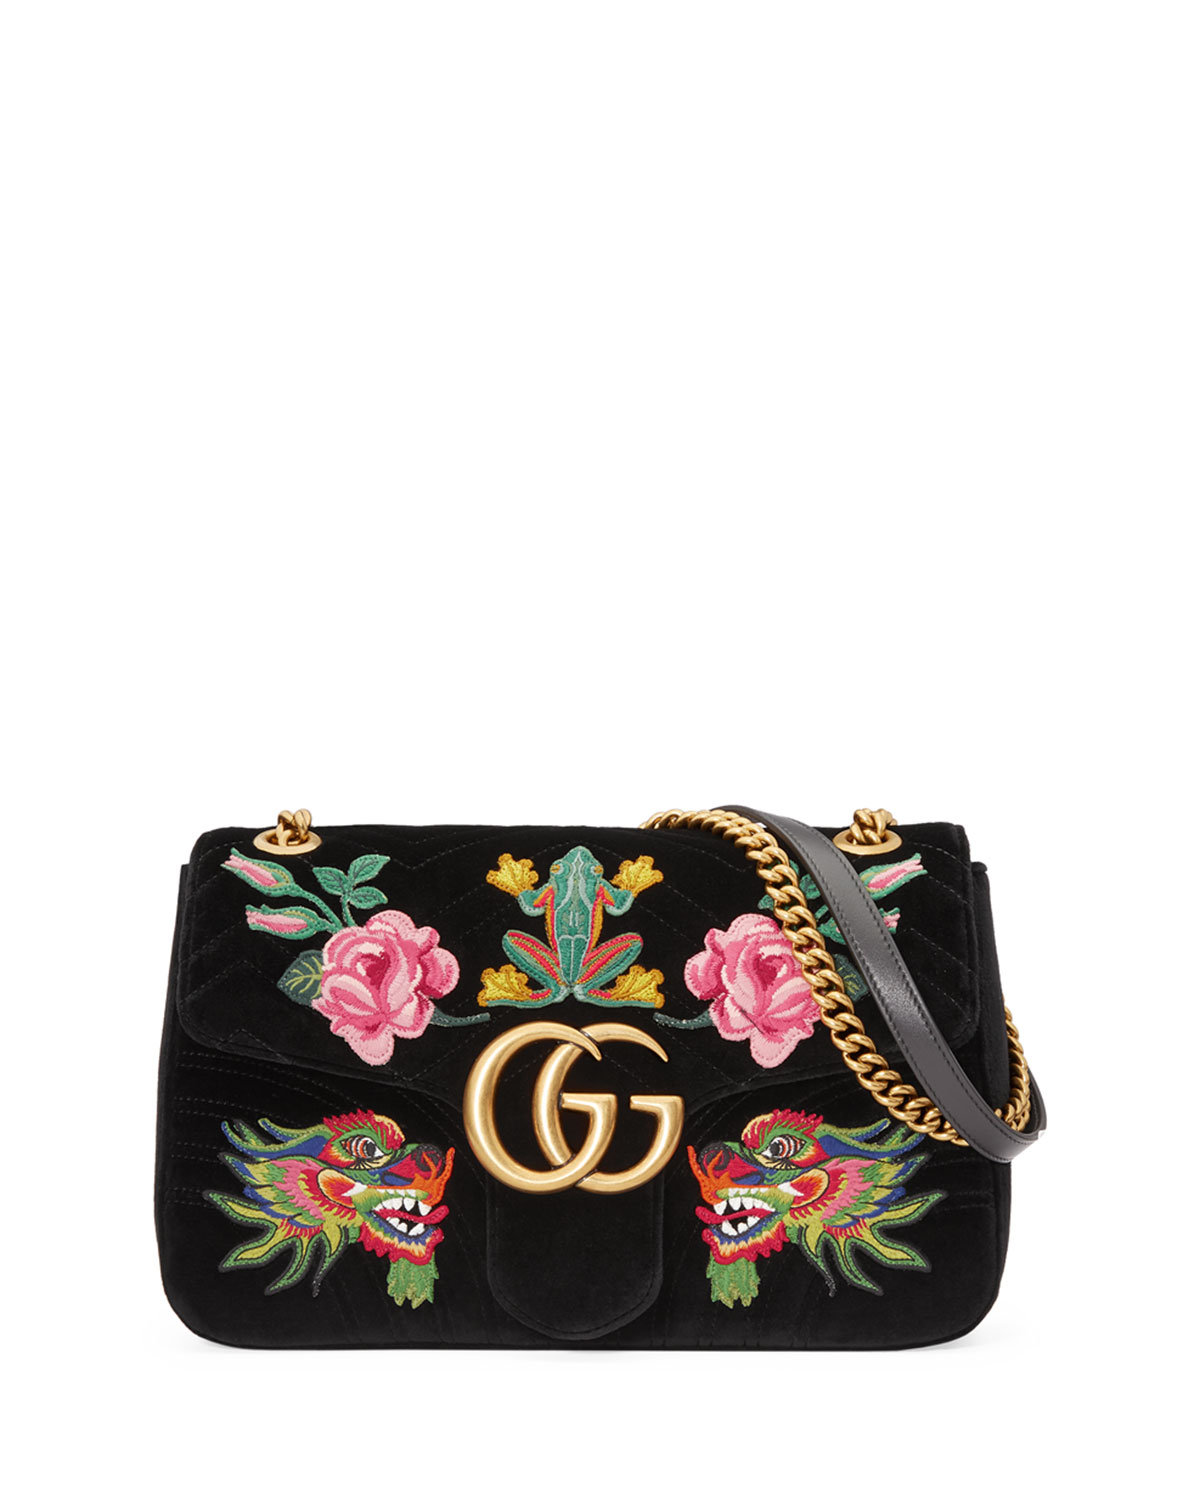 dbcc4ef92a0 Gucci 110th Anniversary GG Marmont Small Dragon Velvet Shoulder Bag ...